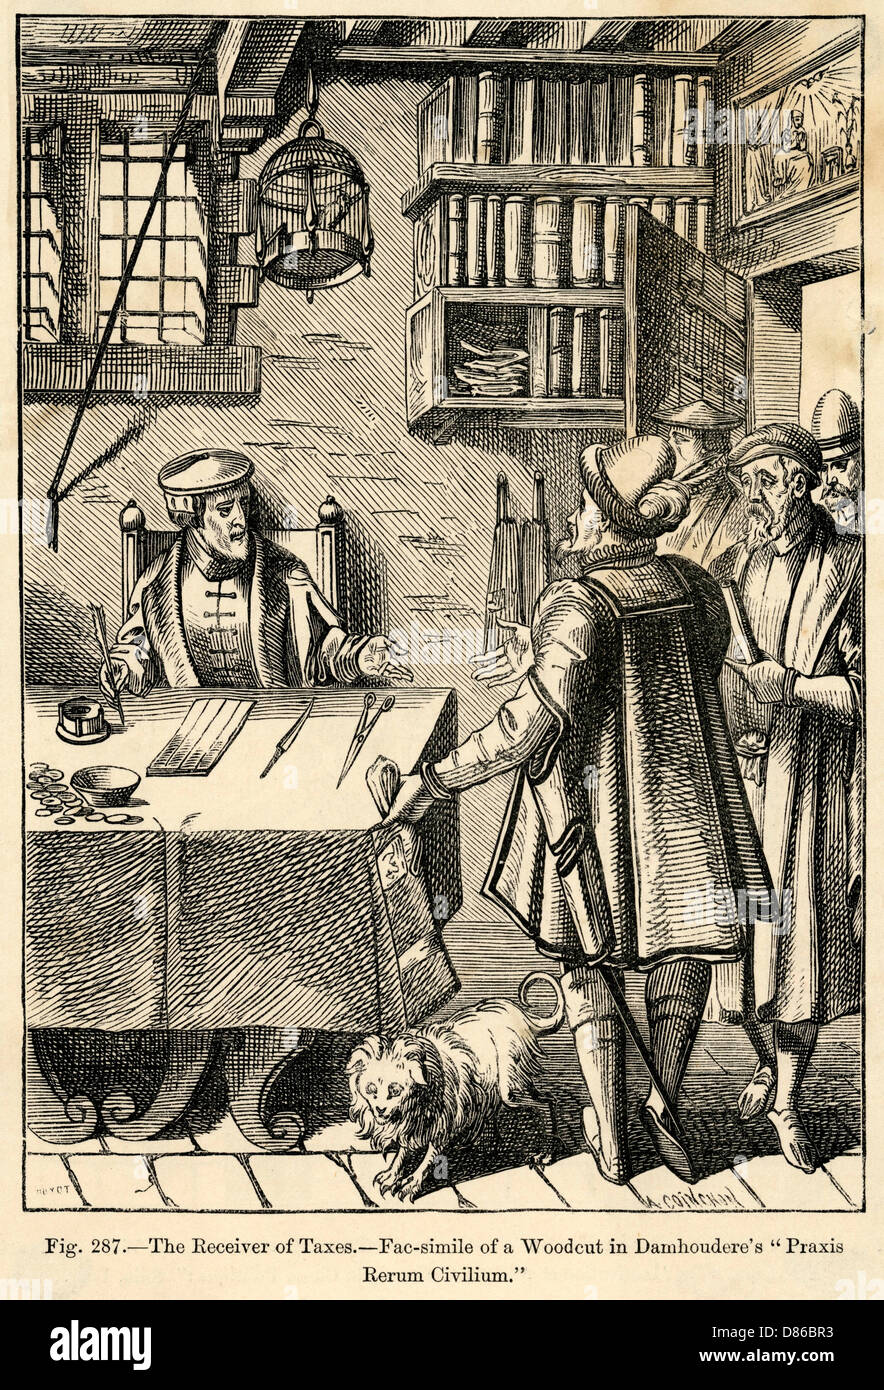 The Receiver Of Taxes  16th Century - Stock Image